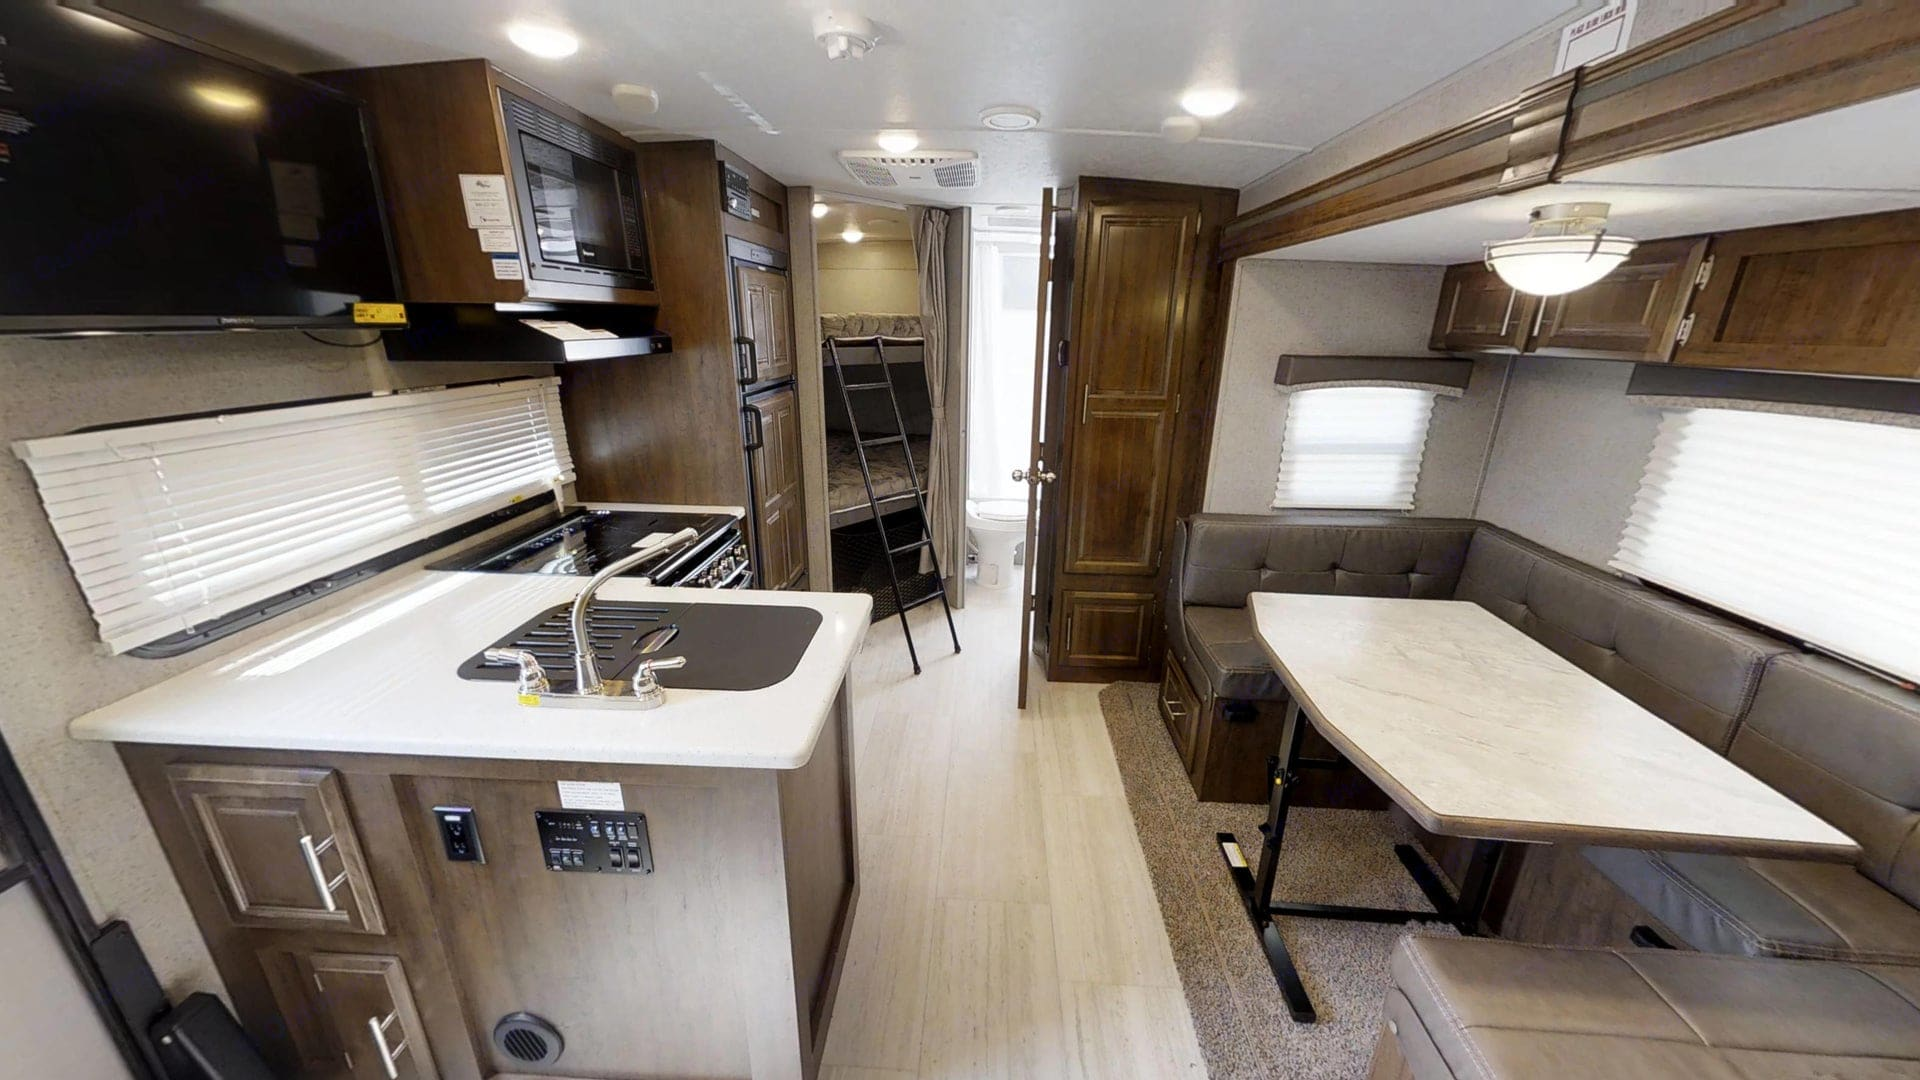 View into spacious kitchen and slide out dinette with double sized bunks and bathroom in the background.. Forest River Rockwood Mini Lite 2019